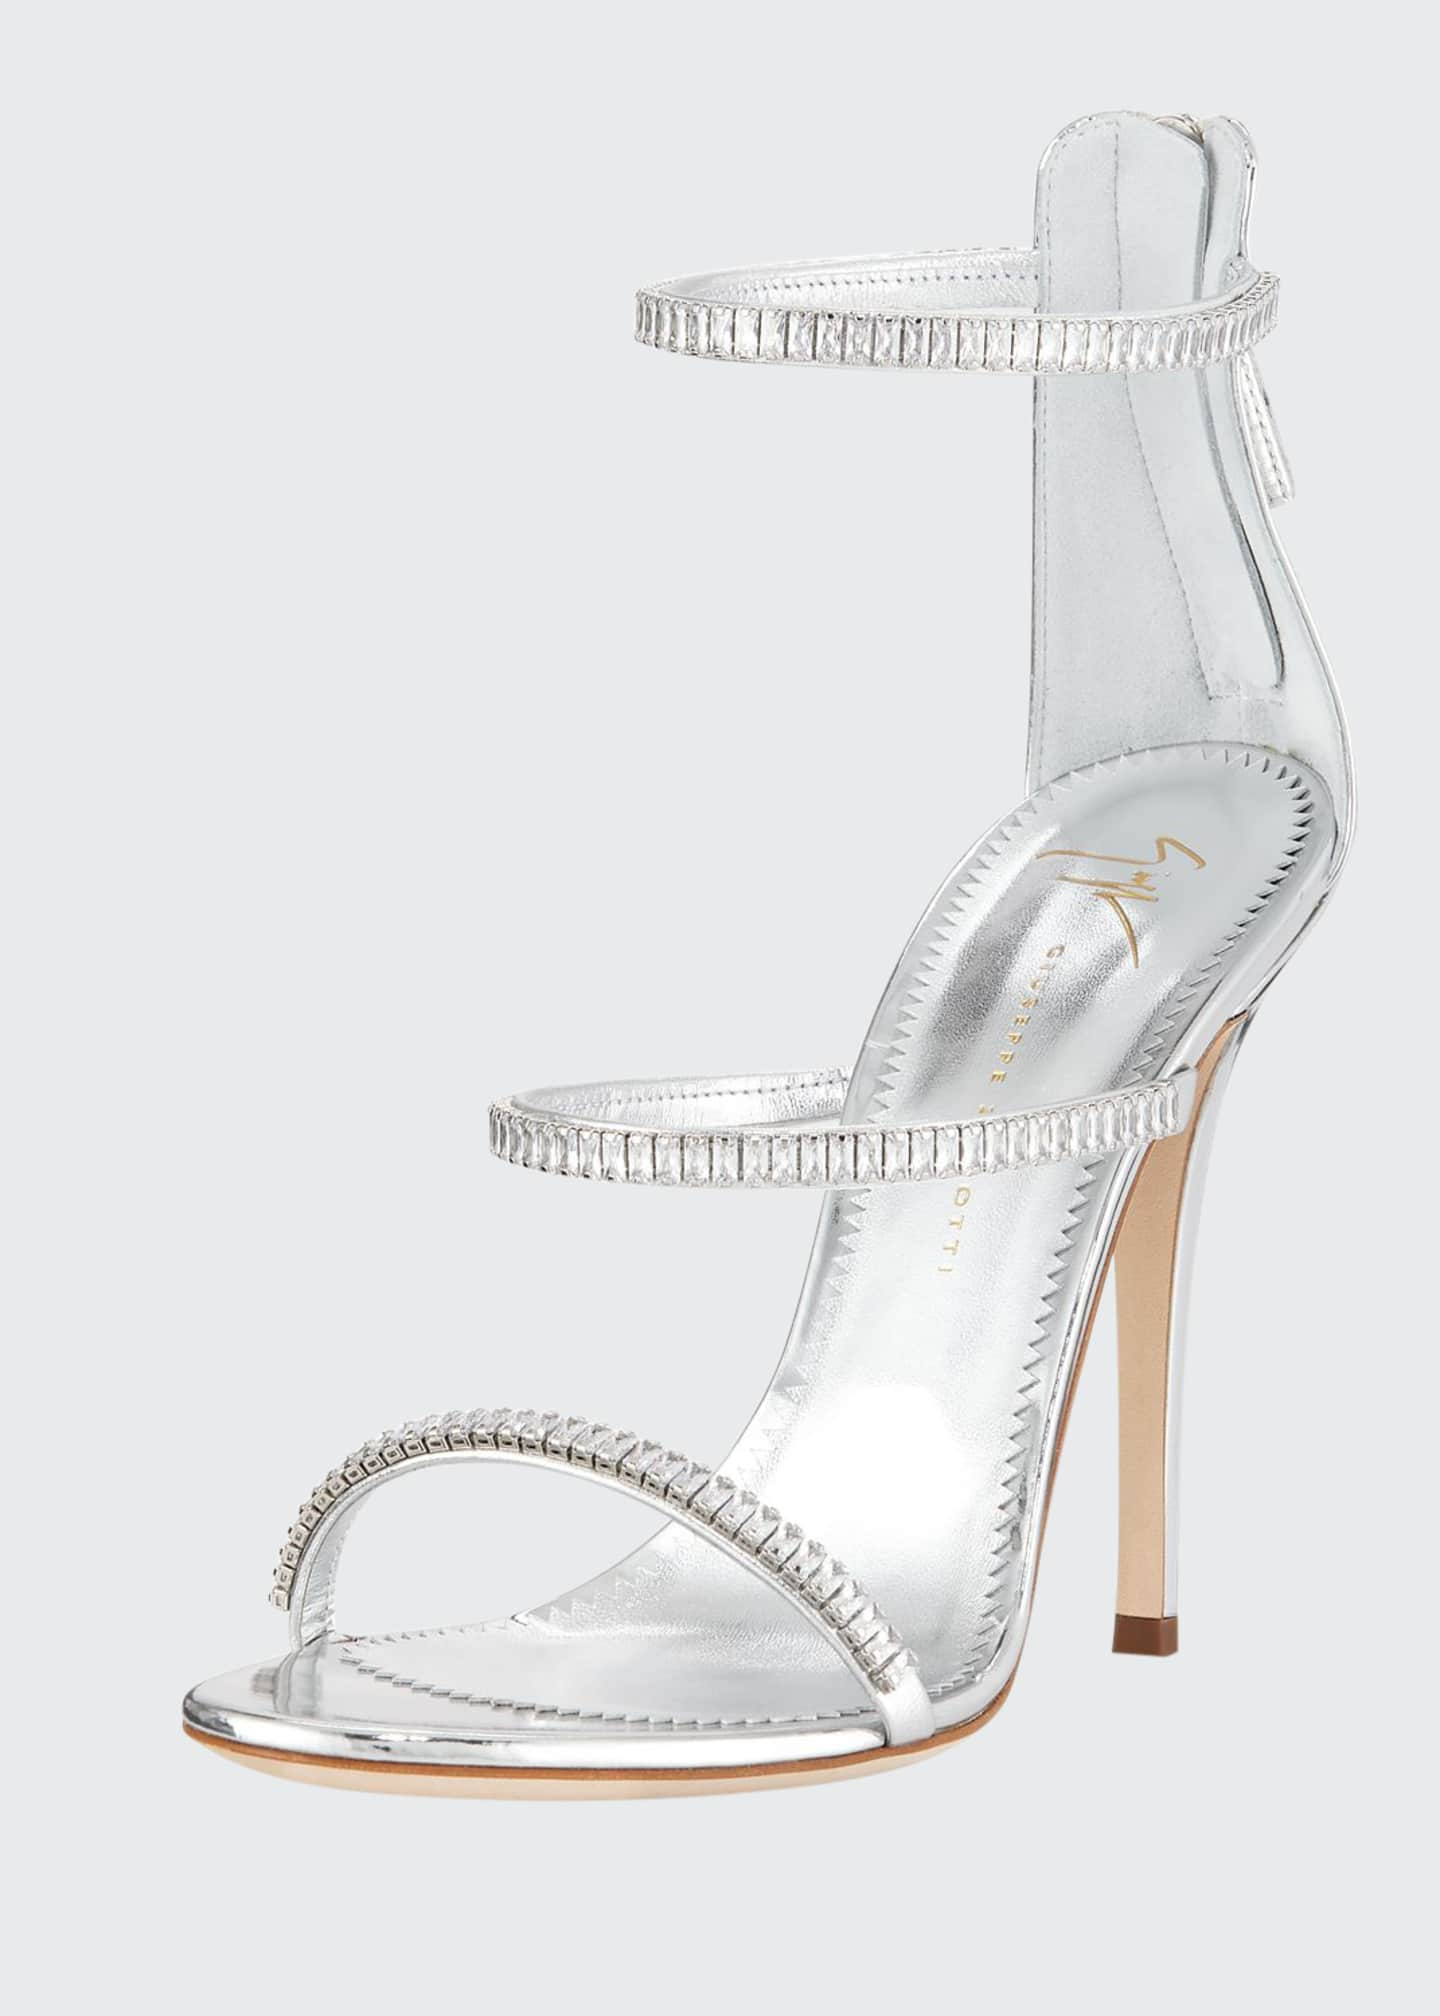 Giuseppe Zanotti Metallic Leather 3-Band Crystal Sandals